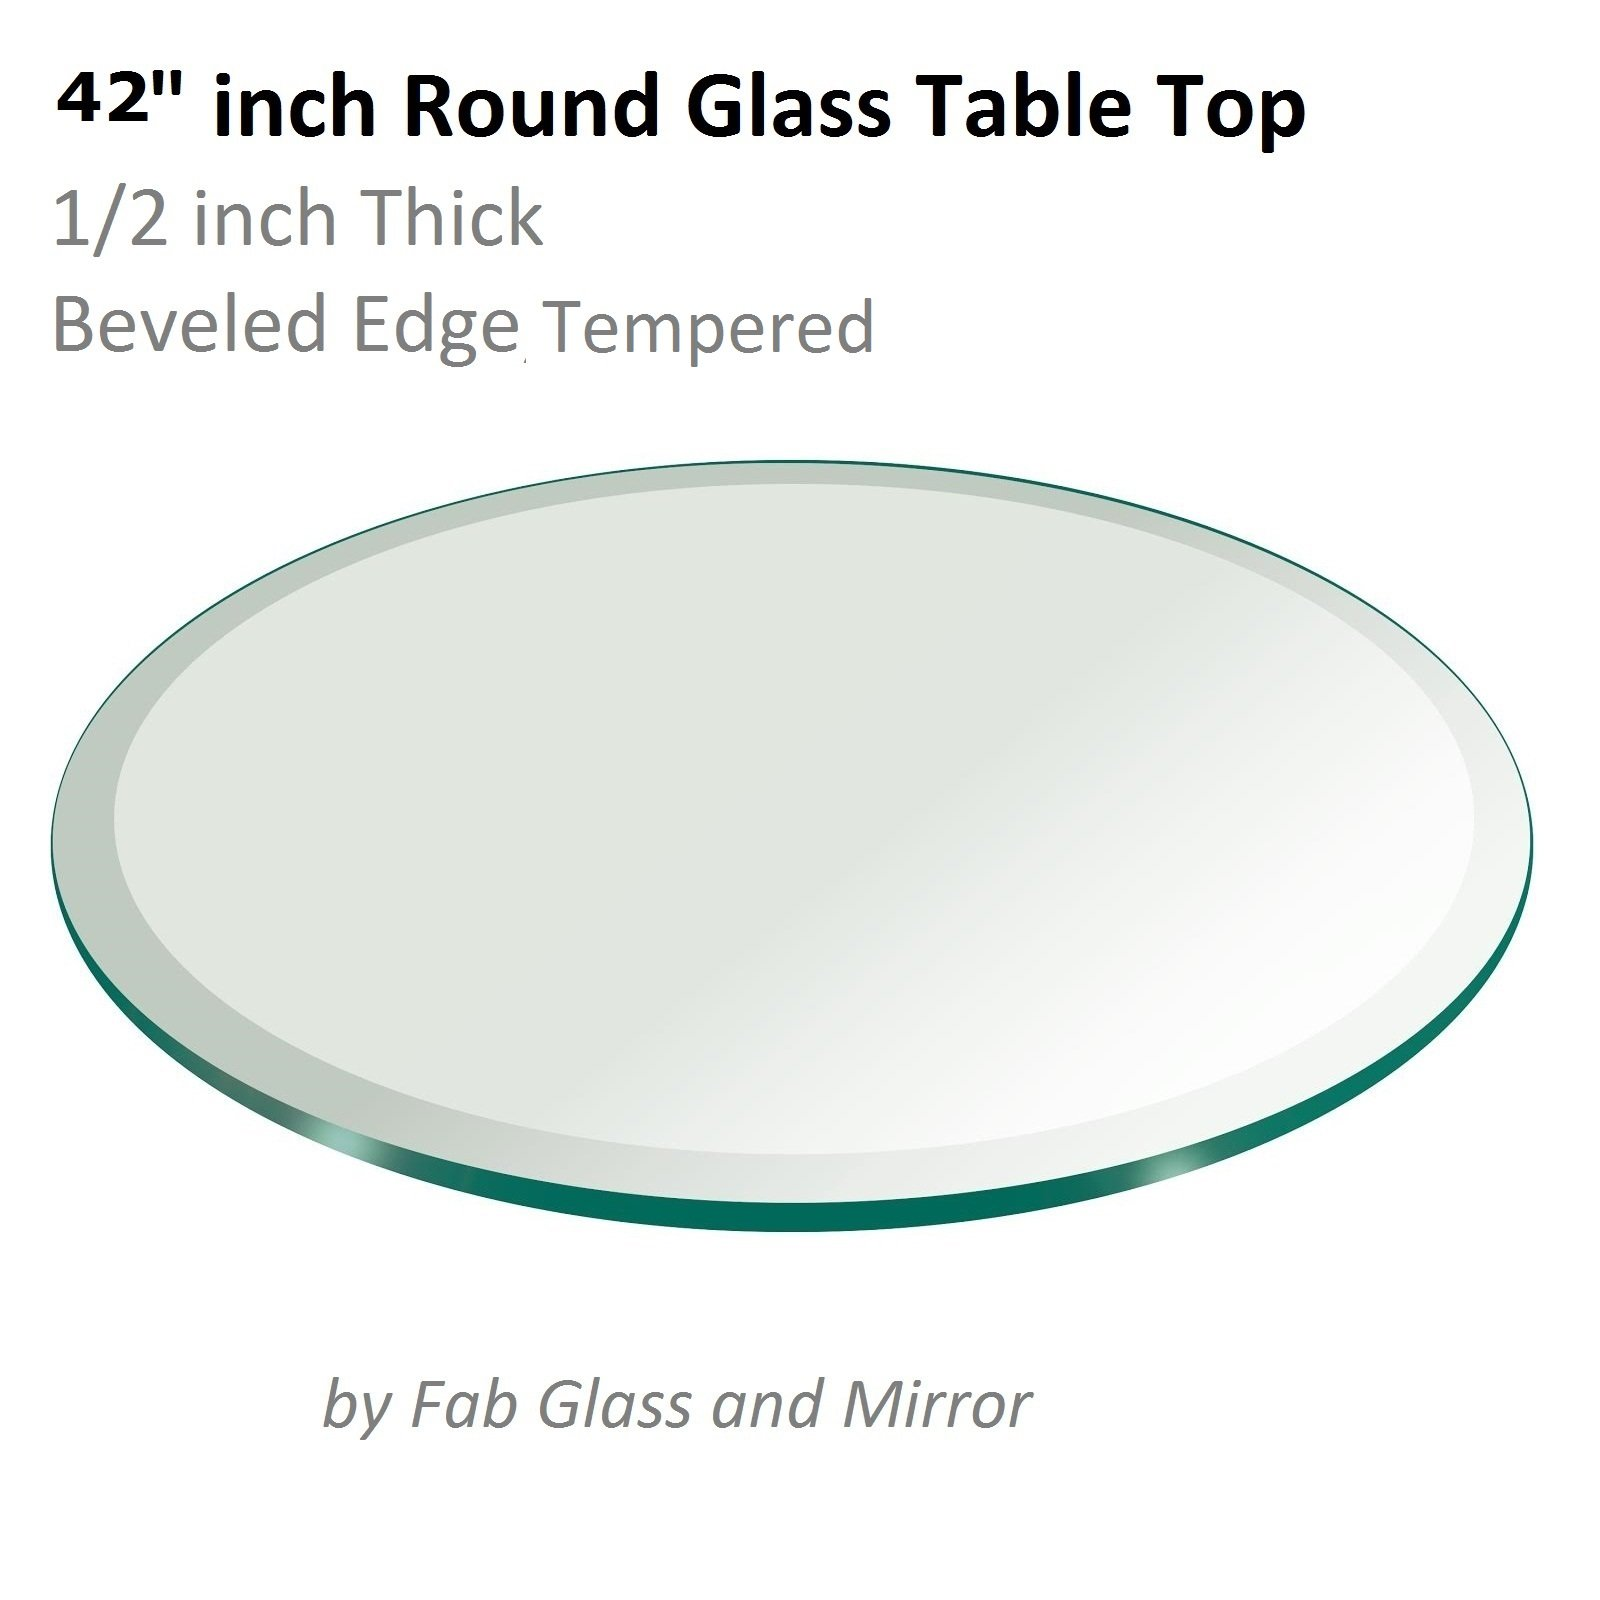 42'' Inch Round Glass Table Top 1/2'' Thick Tempered Beveled Edge by Fab Glass and Mirror